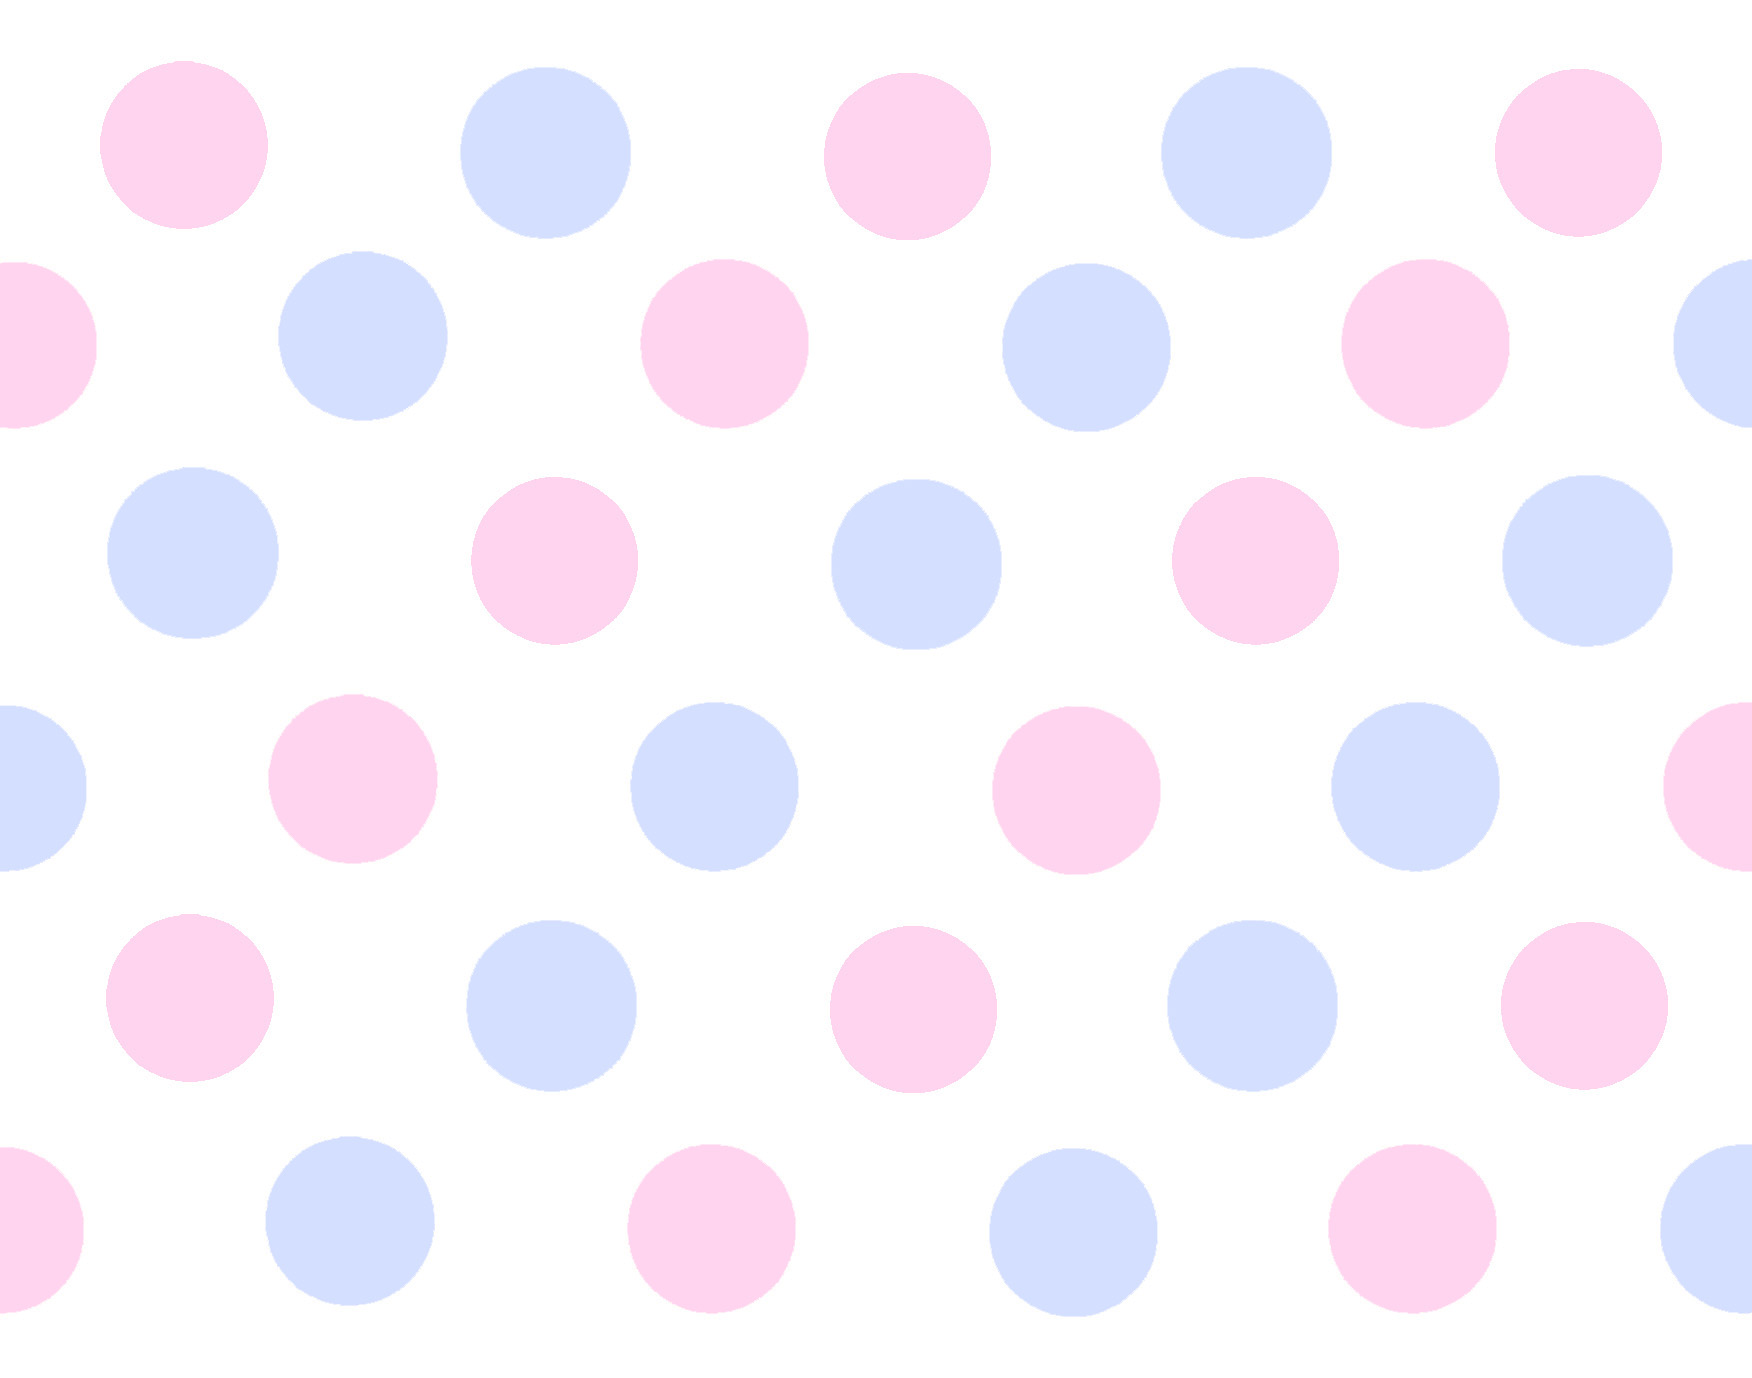 My Pink Polka Dots for Pinterest 1752x1378